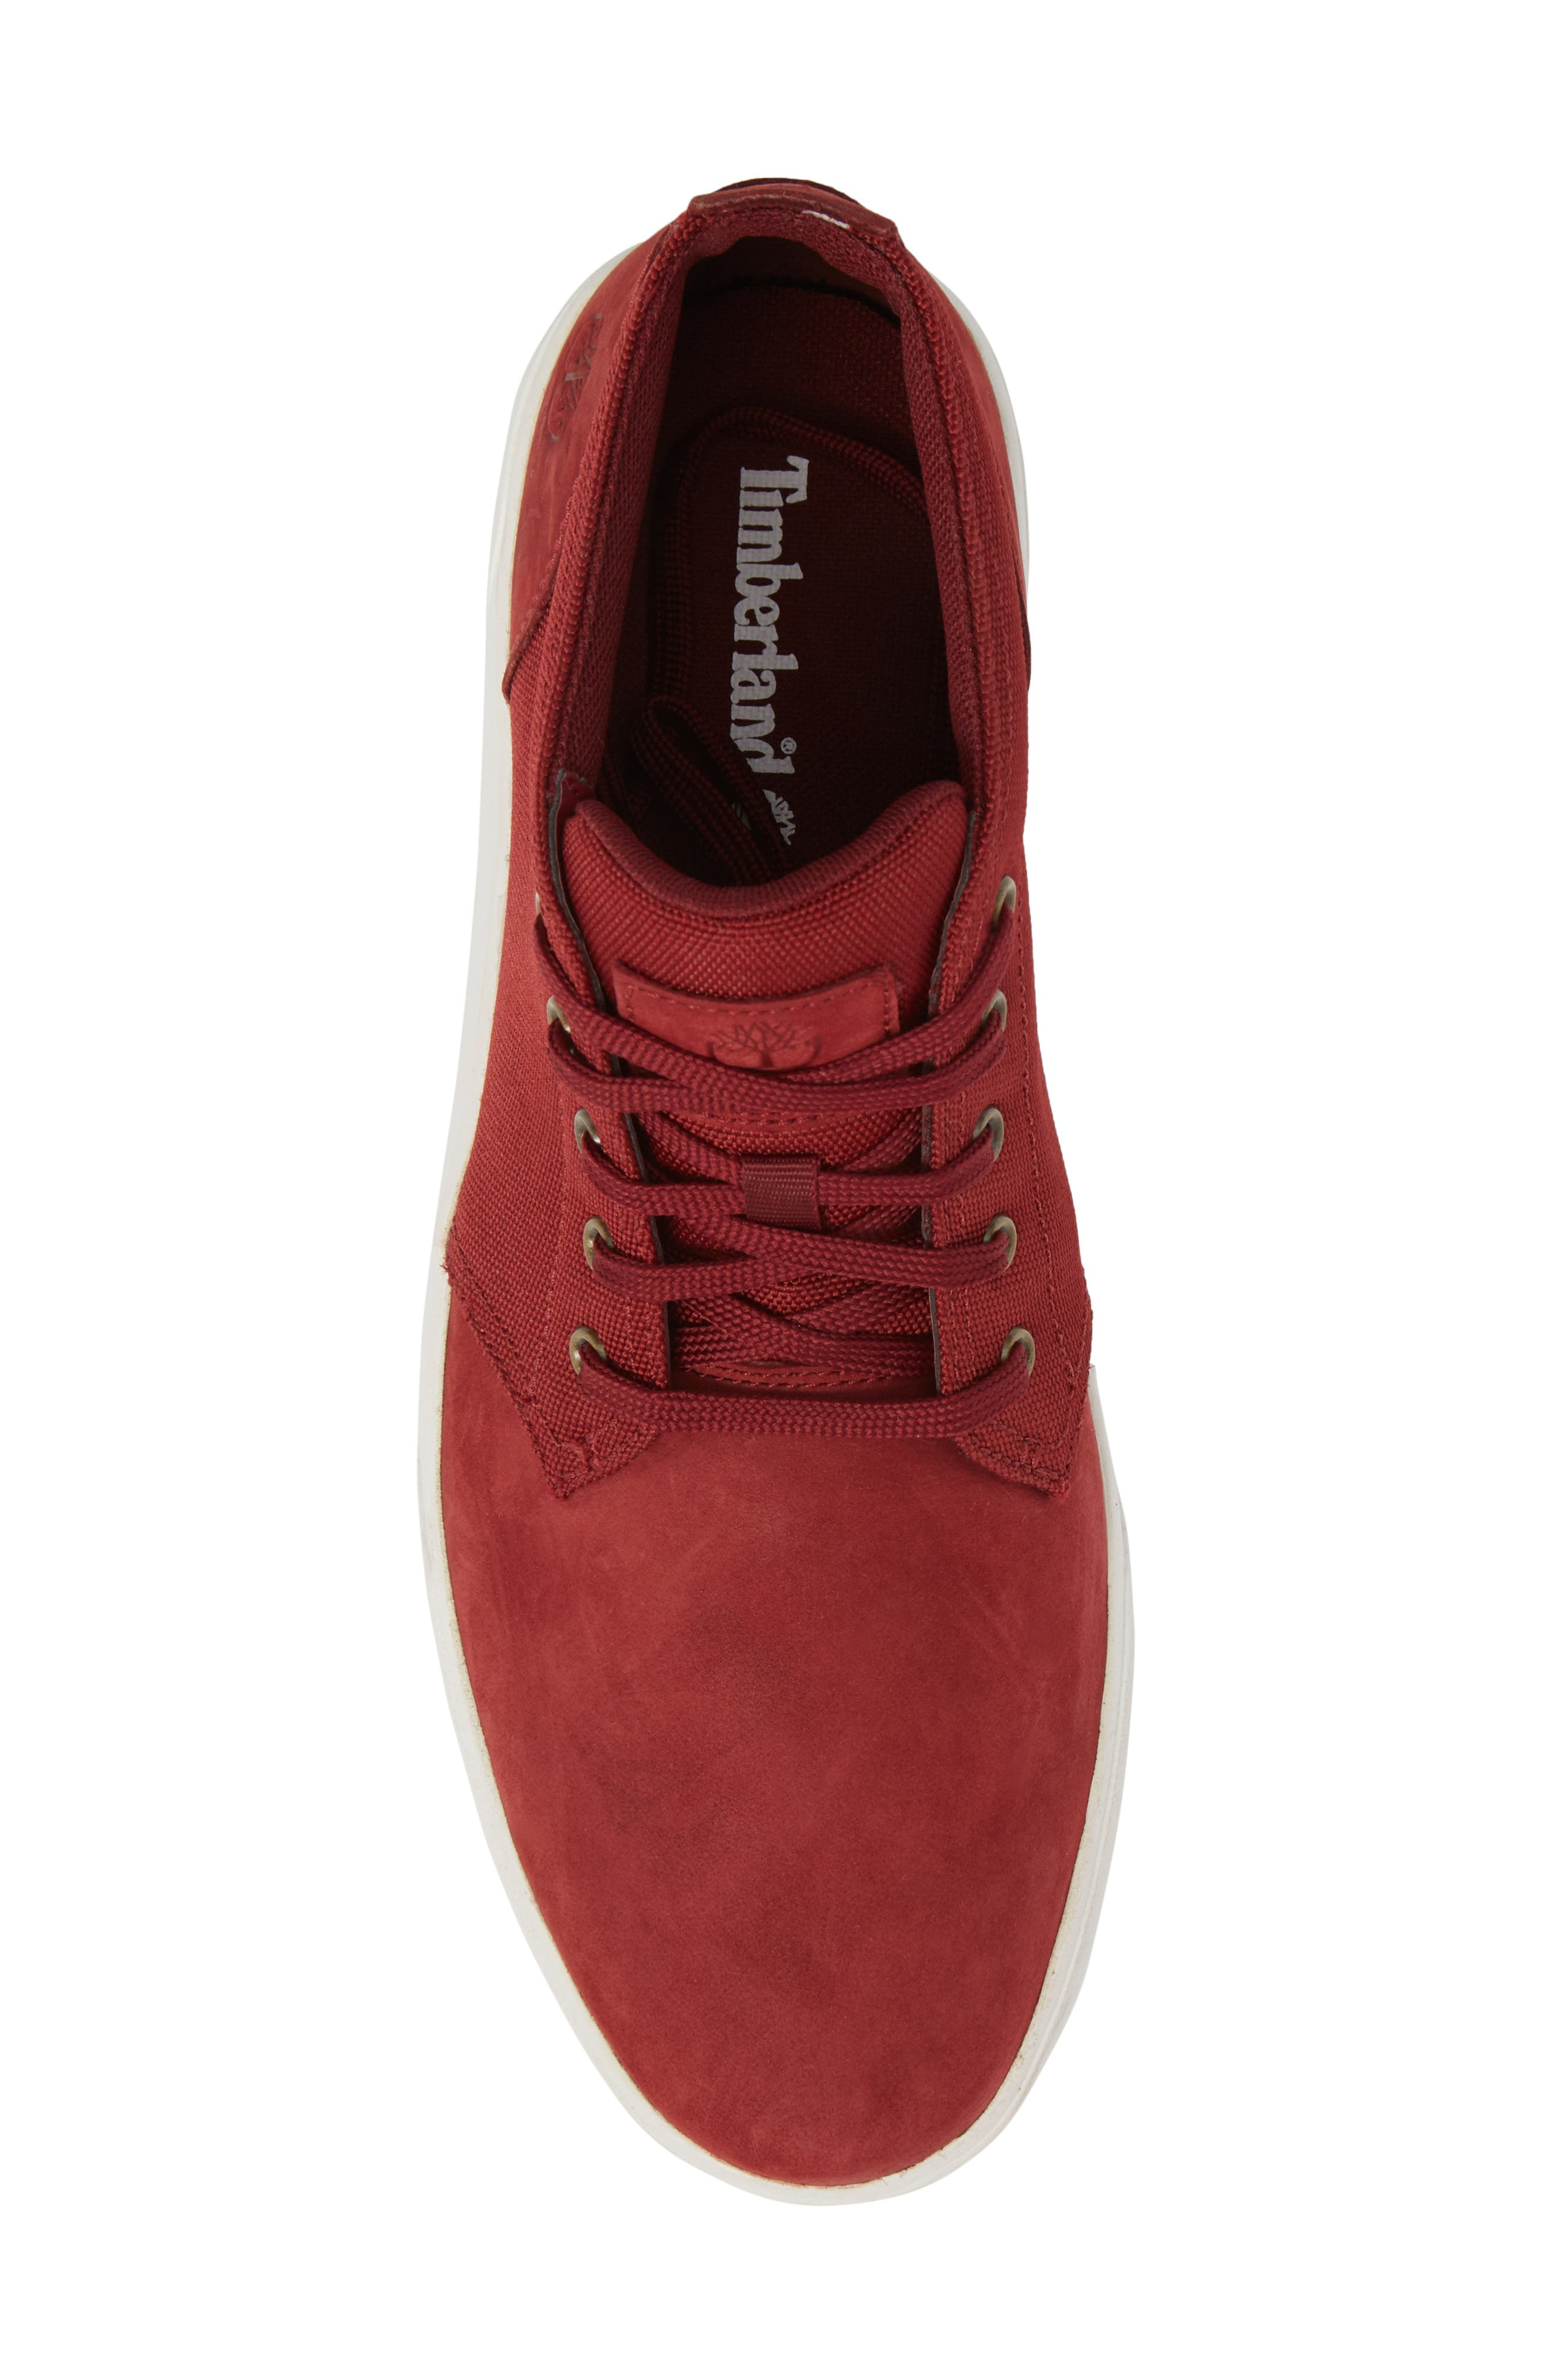 Earthkeepers<sup>™</sup> 'Groveton' Chukka Sneaker,                             Alternate thumbnail 5, color,                             Pomegranate Nubuck